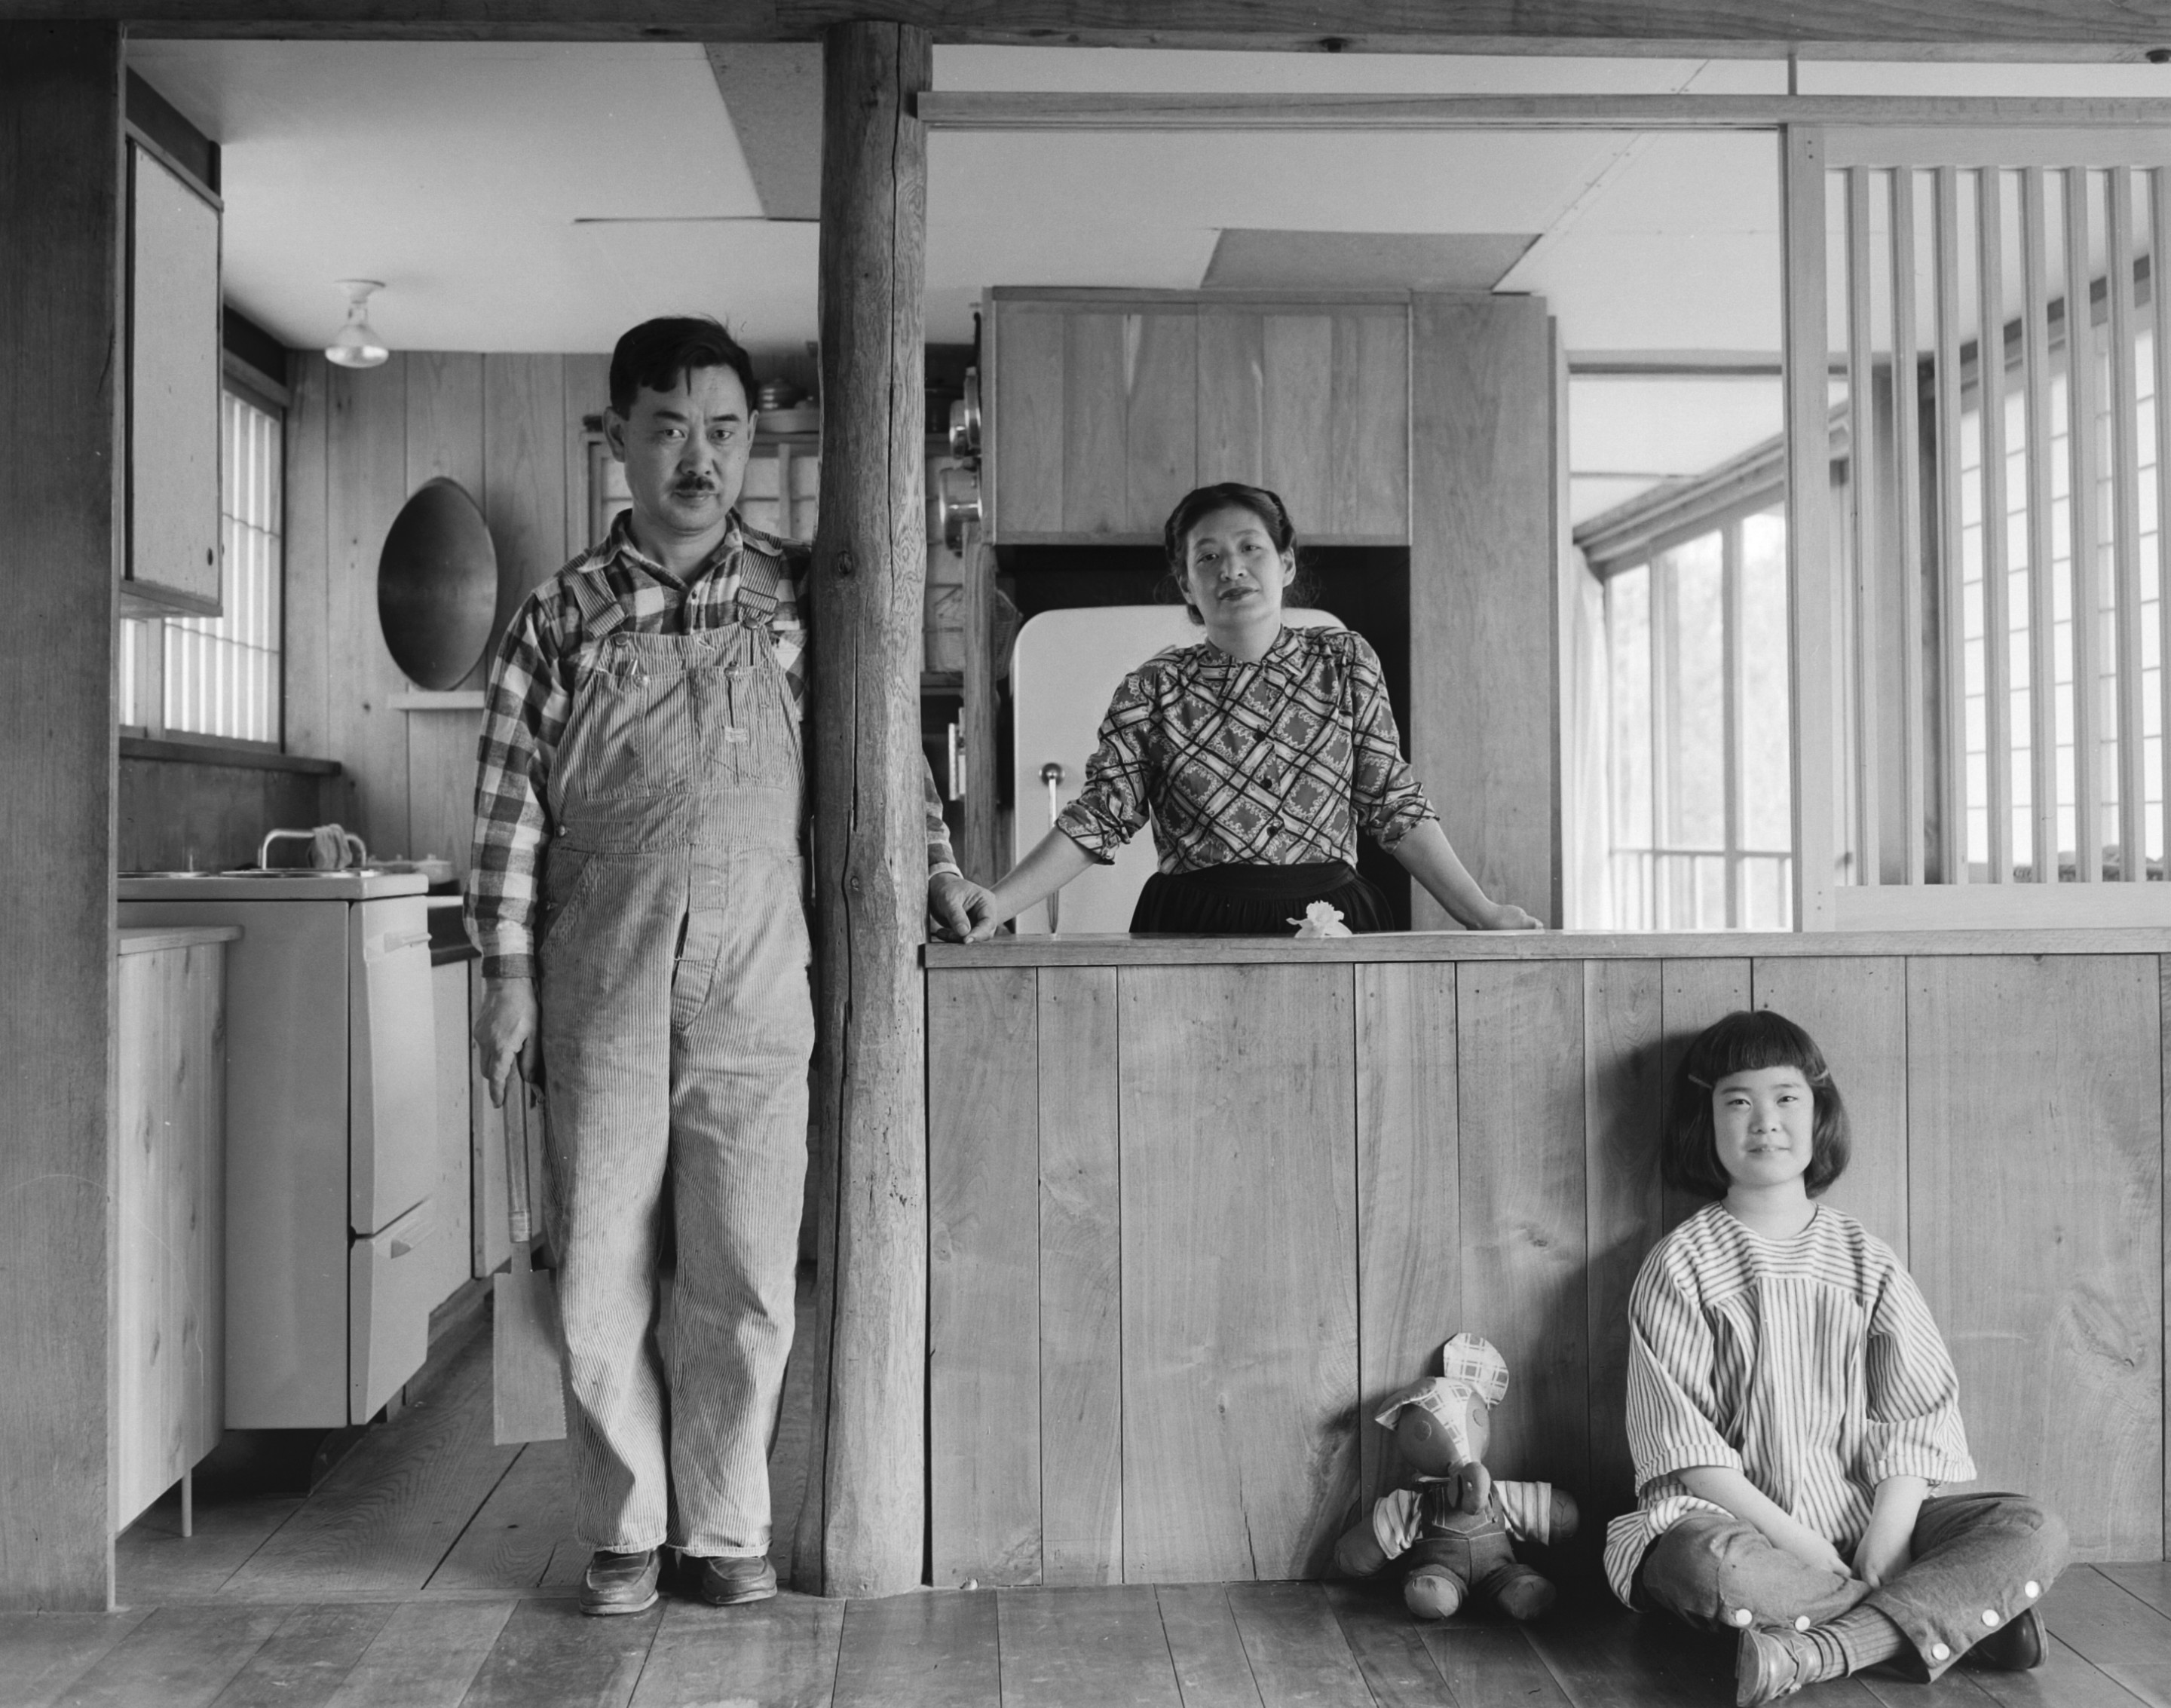 Black and white photo of a man, woman, and child in wood house